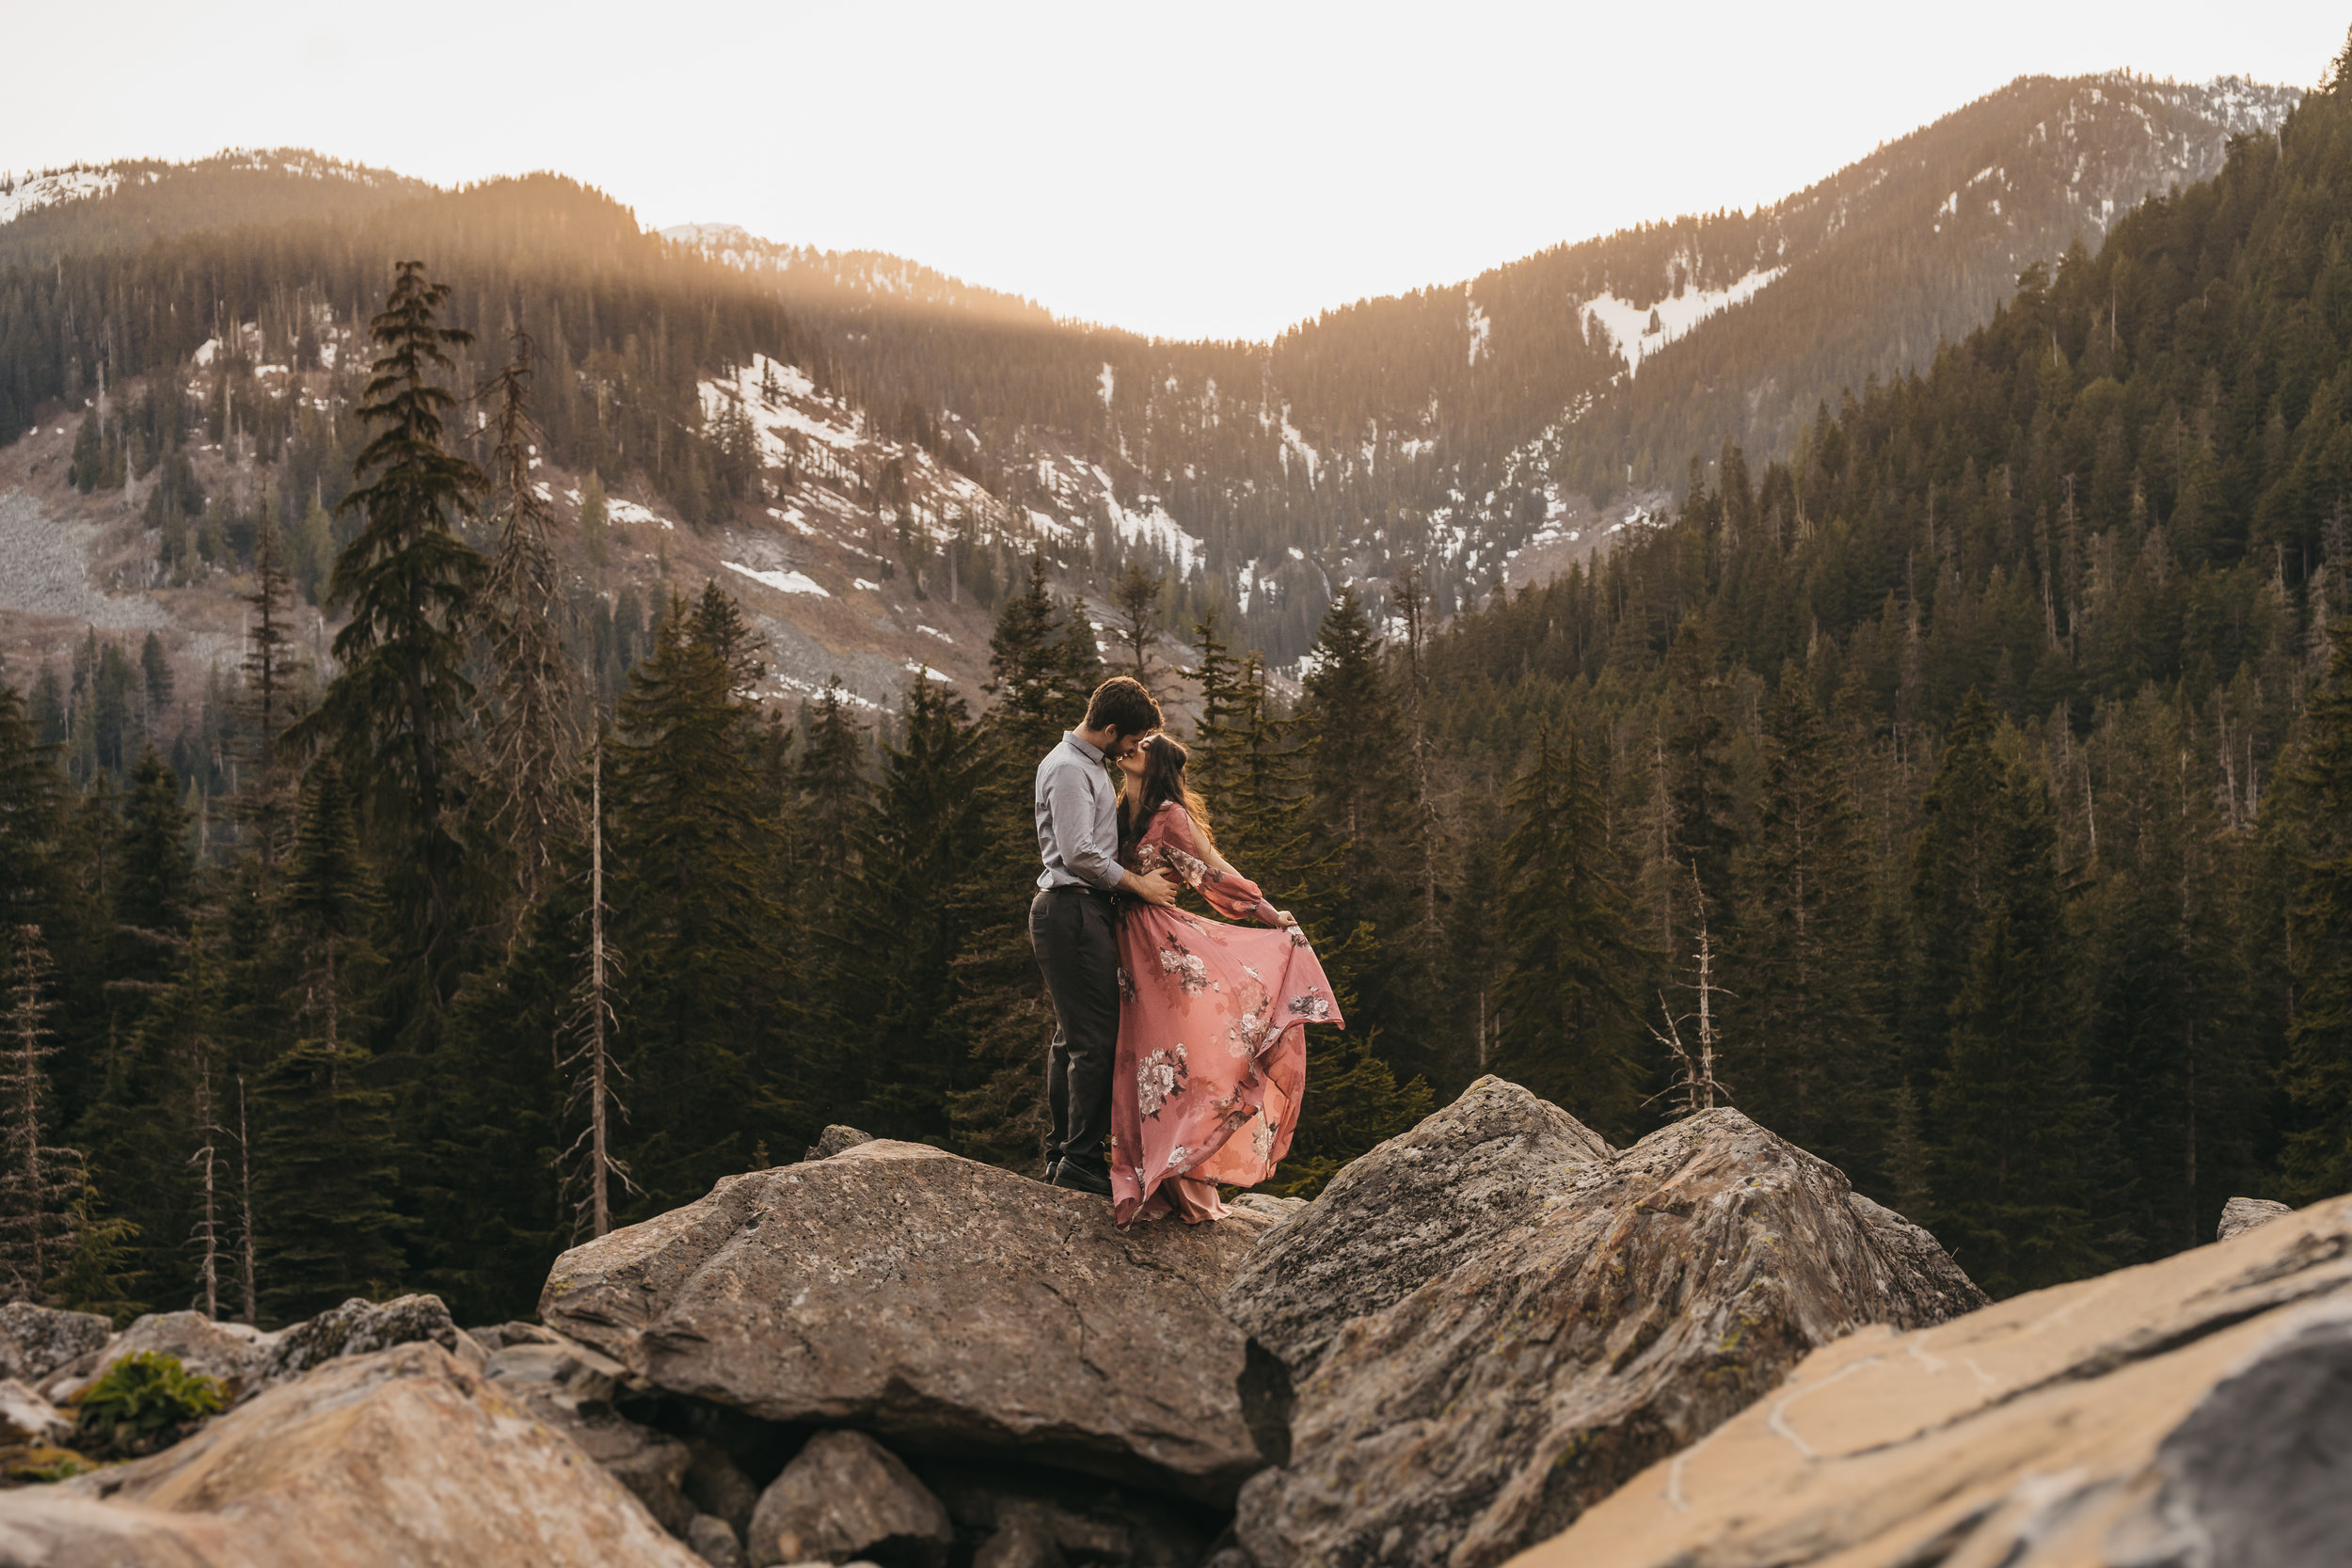 Snoqualmie National Forest Engagement Session | Between the Pine Adventure Elopement Photography